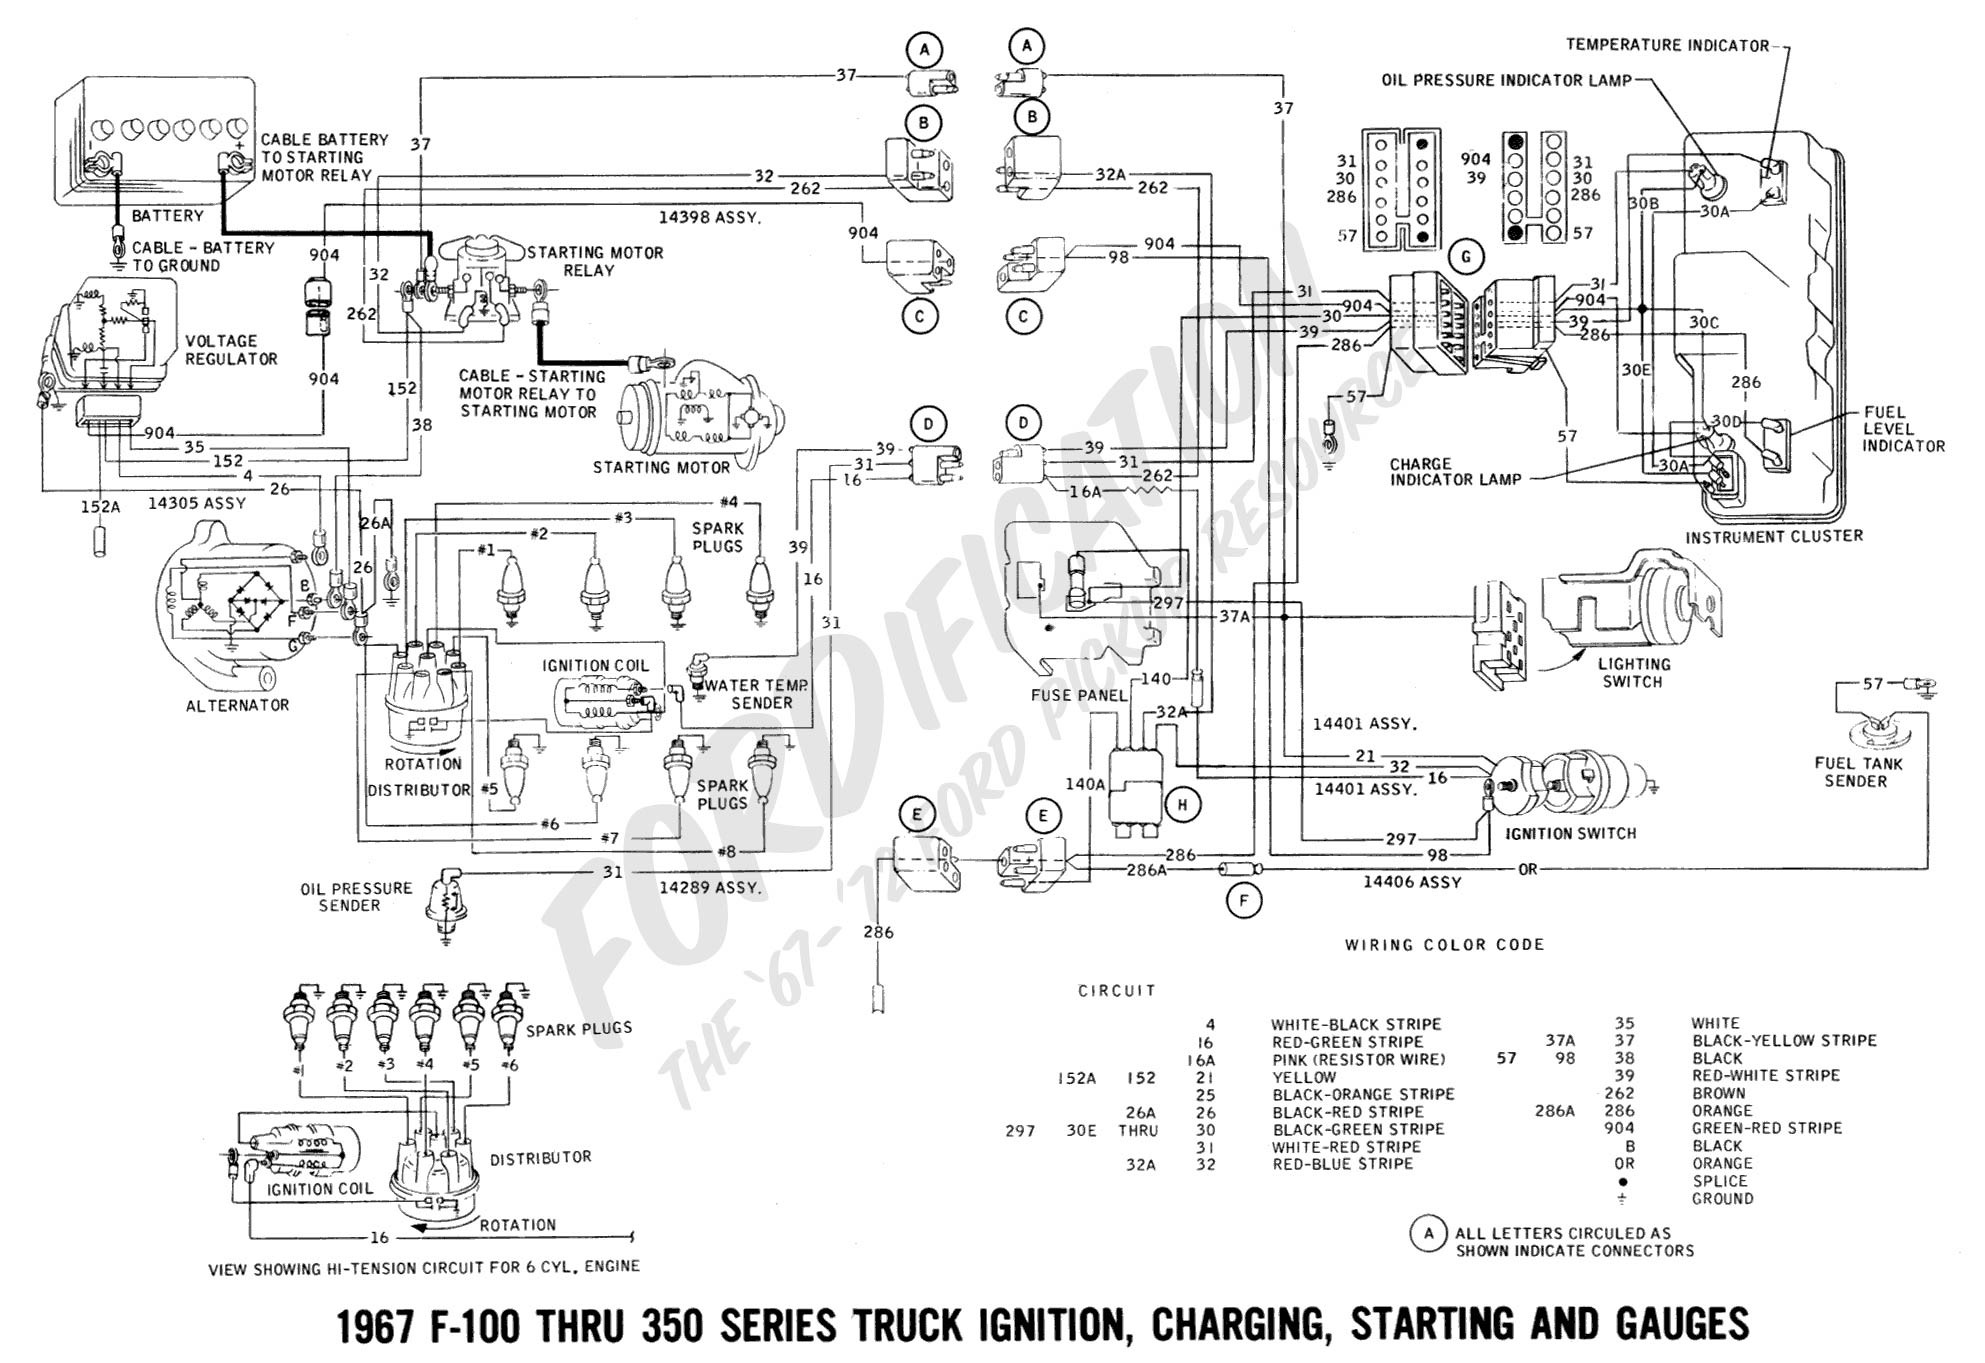 hight resolution of s2000 fuse box wiring furthermore 1997 honda civic fuel pump fuse ta22 wiring diagram ta22 wiring diagram by kxf18264